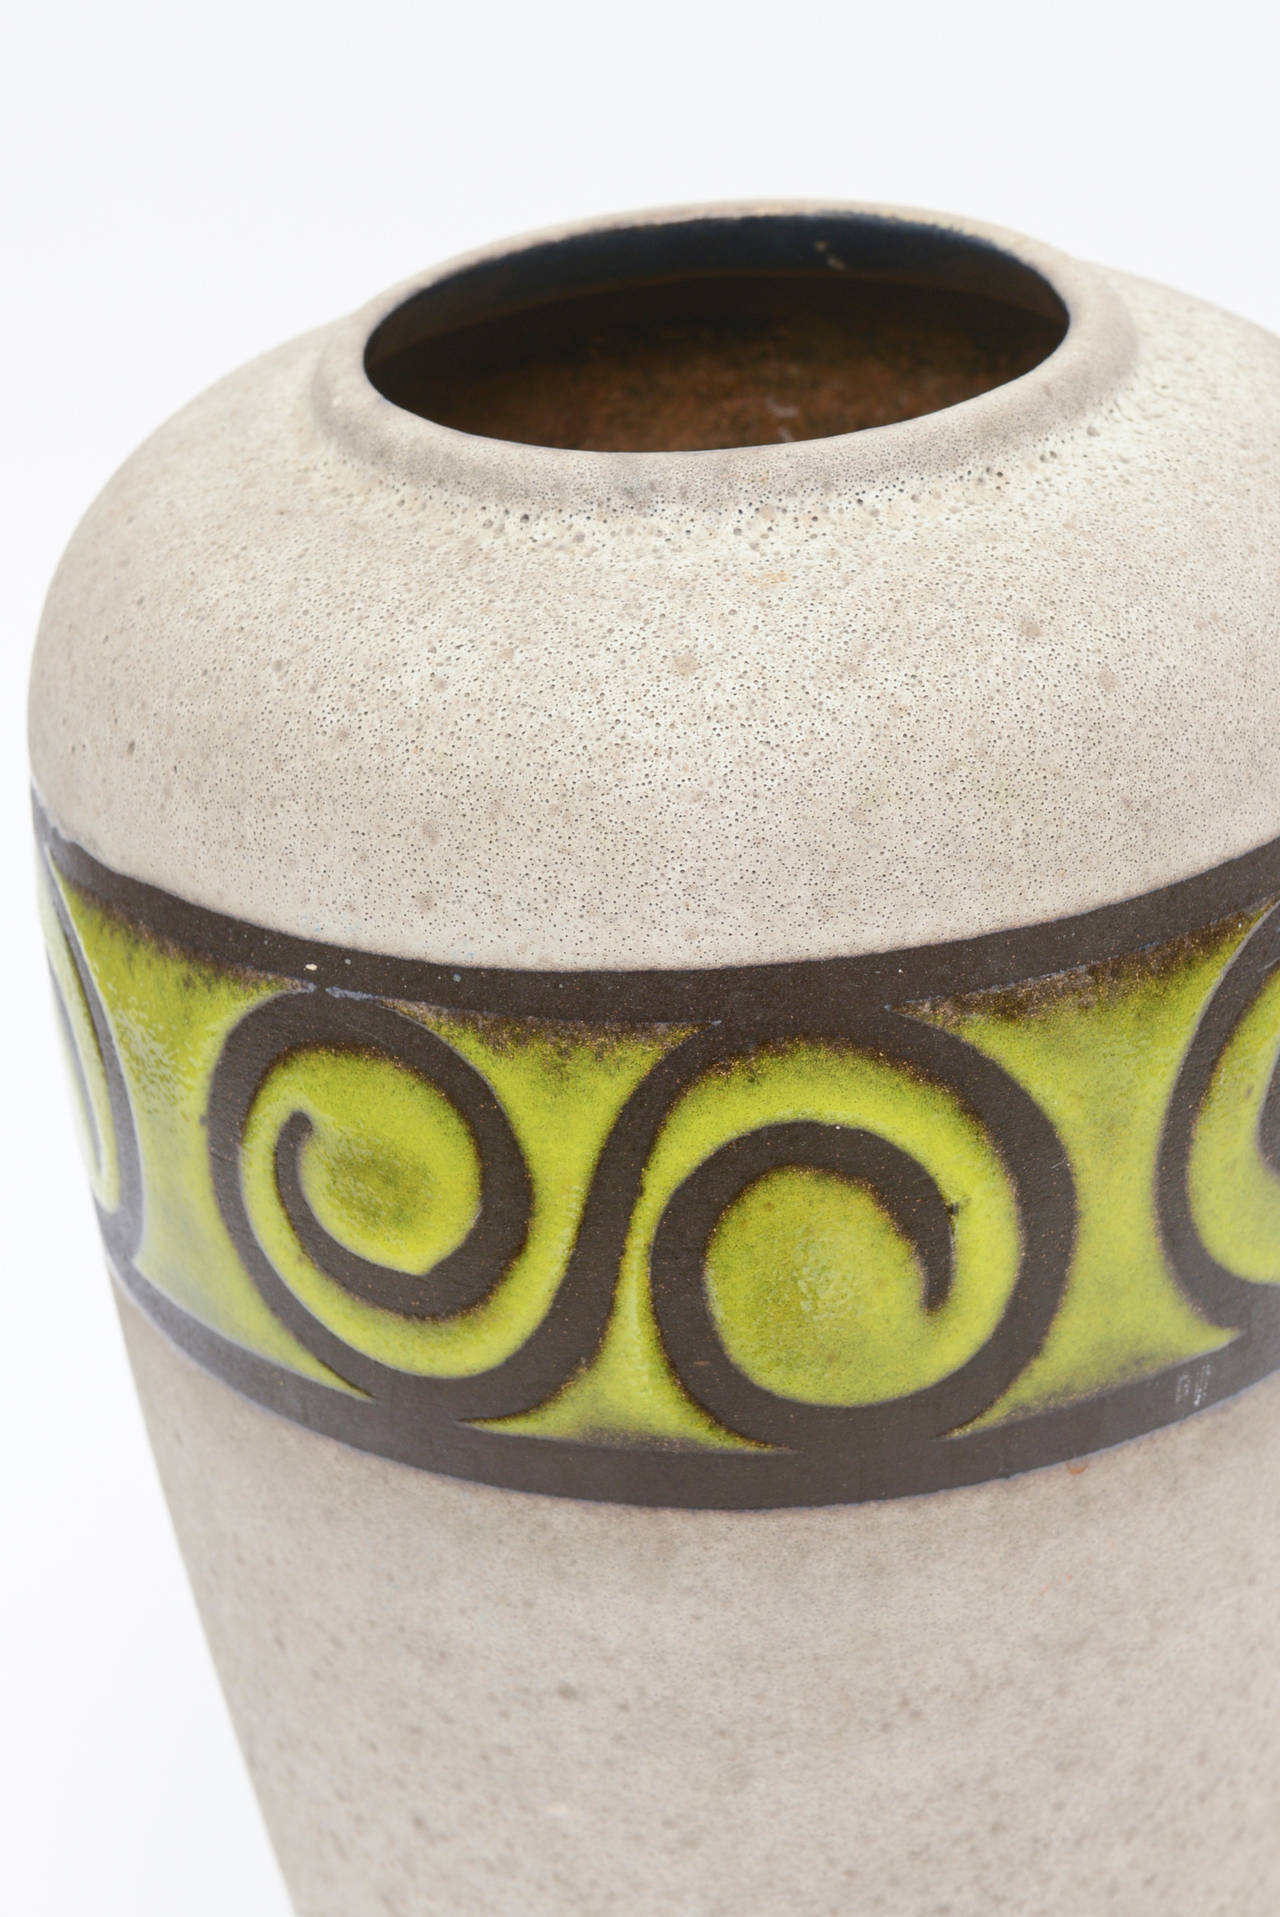 The stunning earthy colors of the grey rough ceramic with the band of the chartreuse glazed polished band with scroll detail adds to the great juxtaposition between earthy and design. There is a partial label on it that reads Eu JA and the number